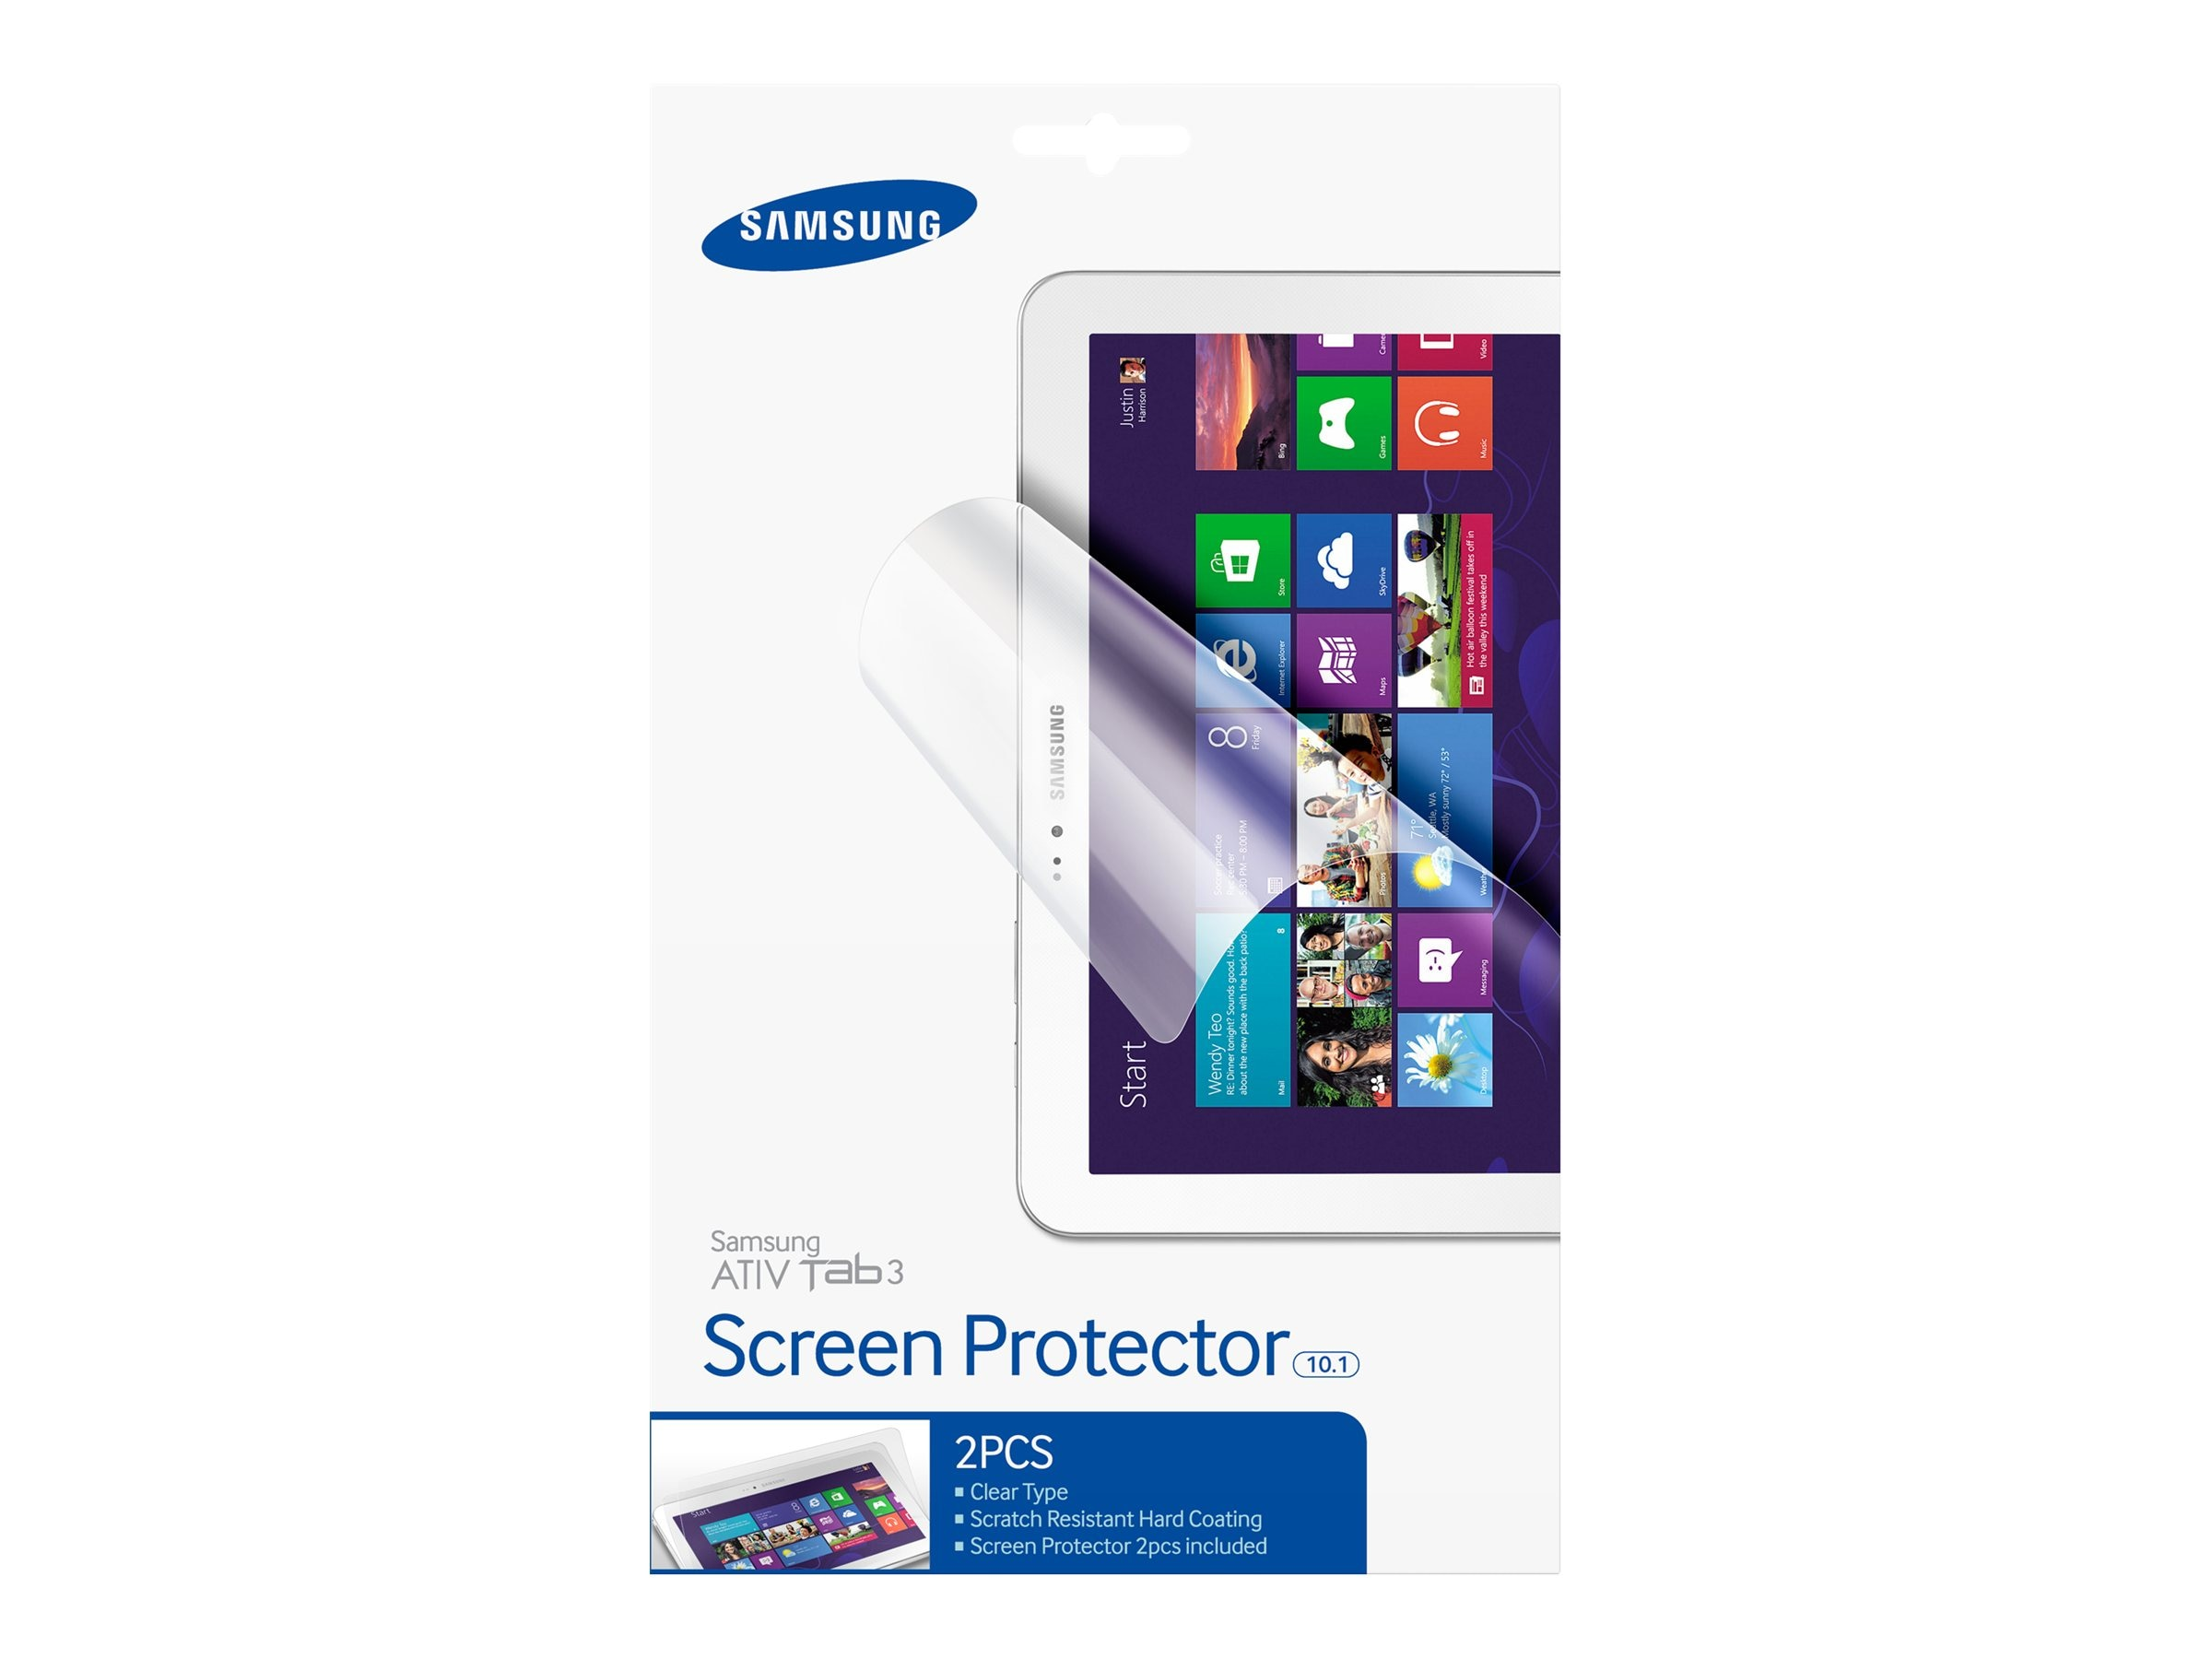 Samsung Screen Protector for ATIV Tab 3 10.1, Clear (2-pack)